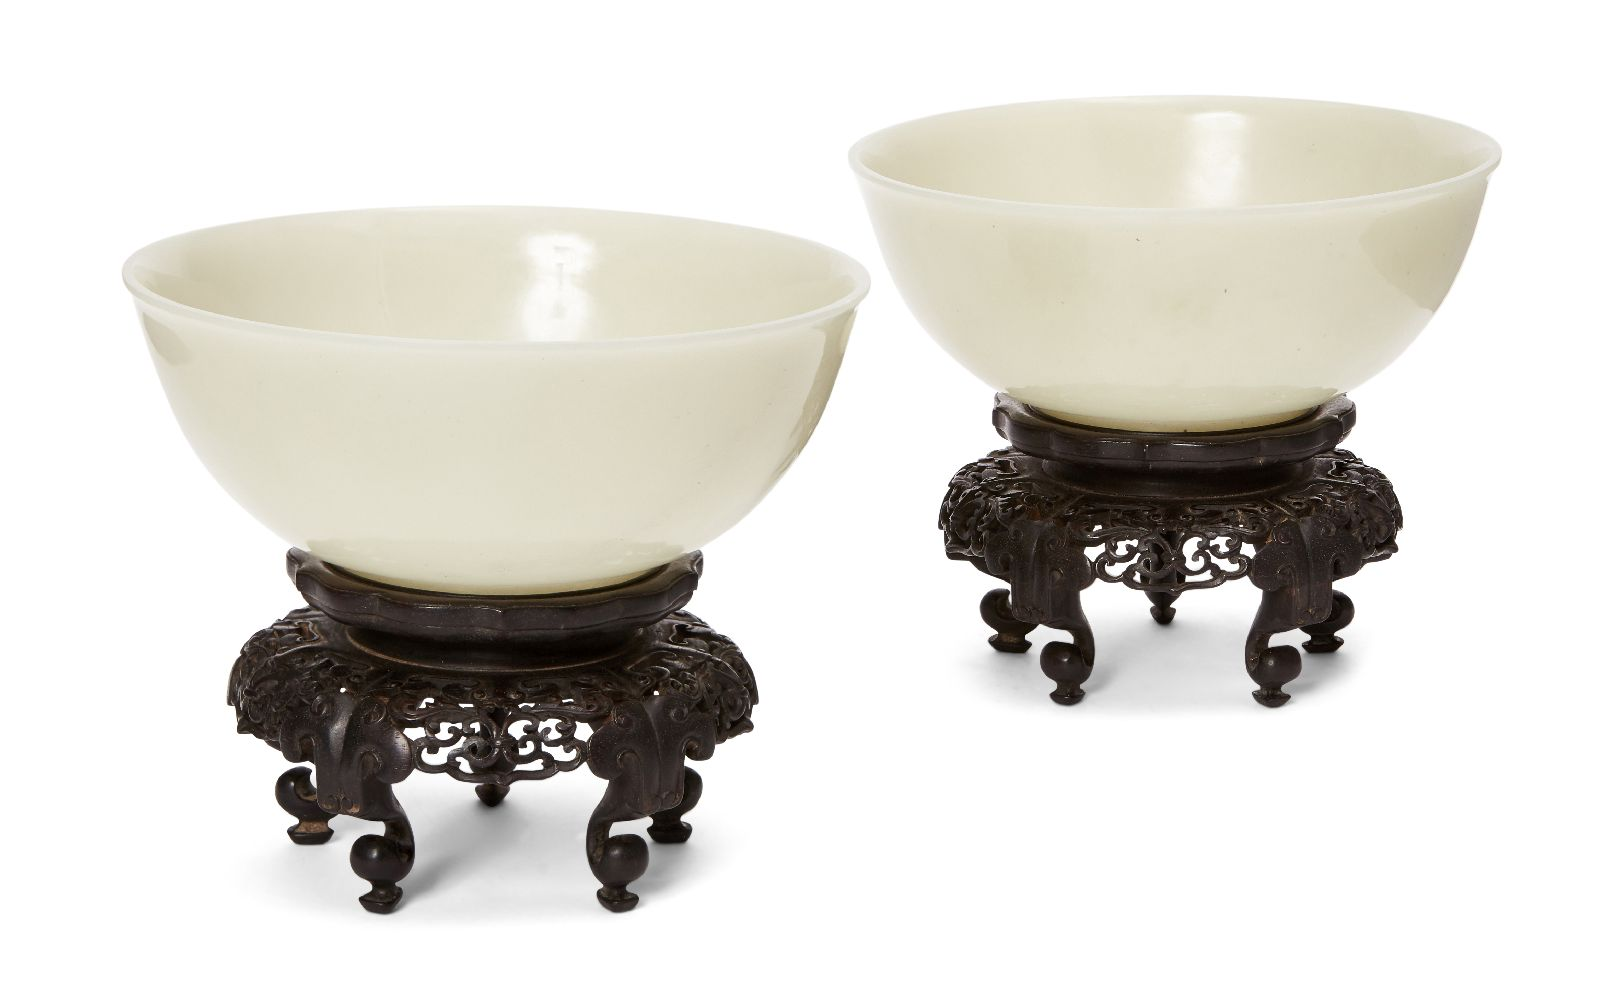 A pair of Chinese pale celadon jade bowls, 19th century, each carved with deep sides and a